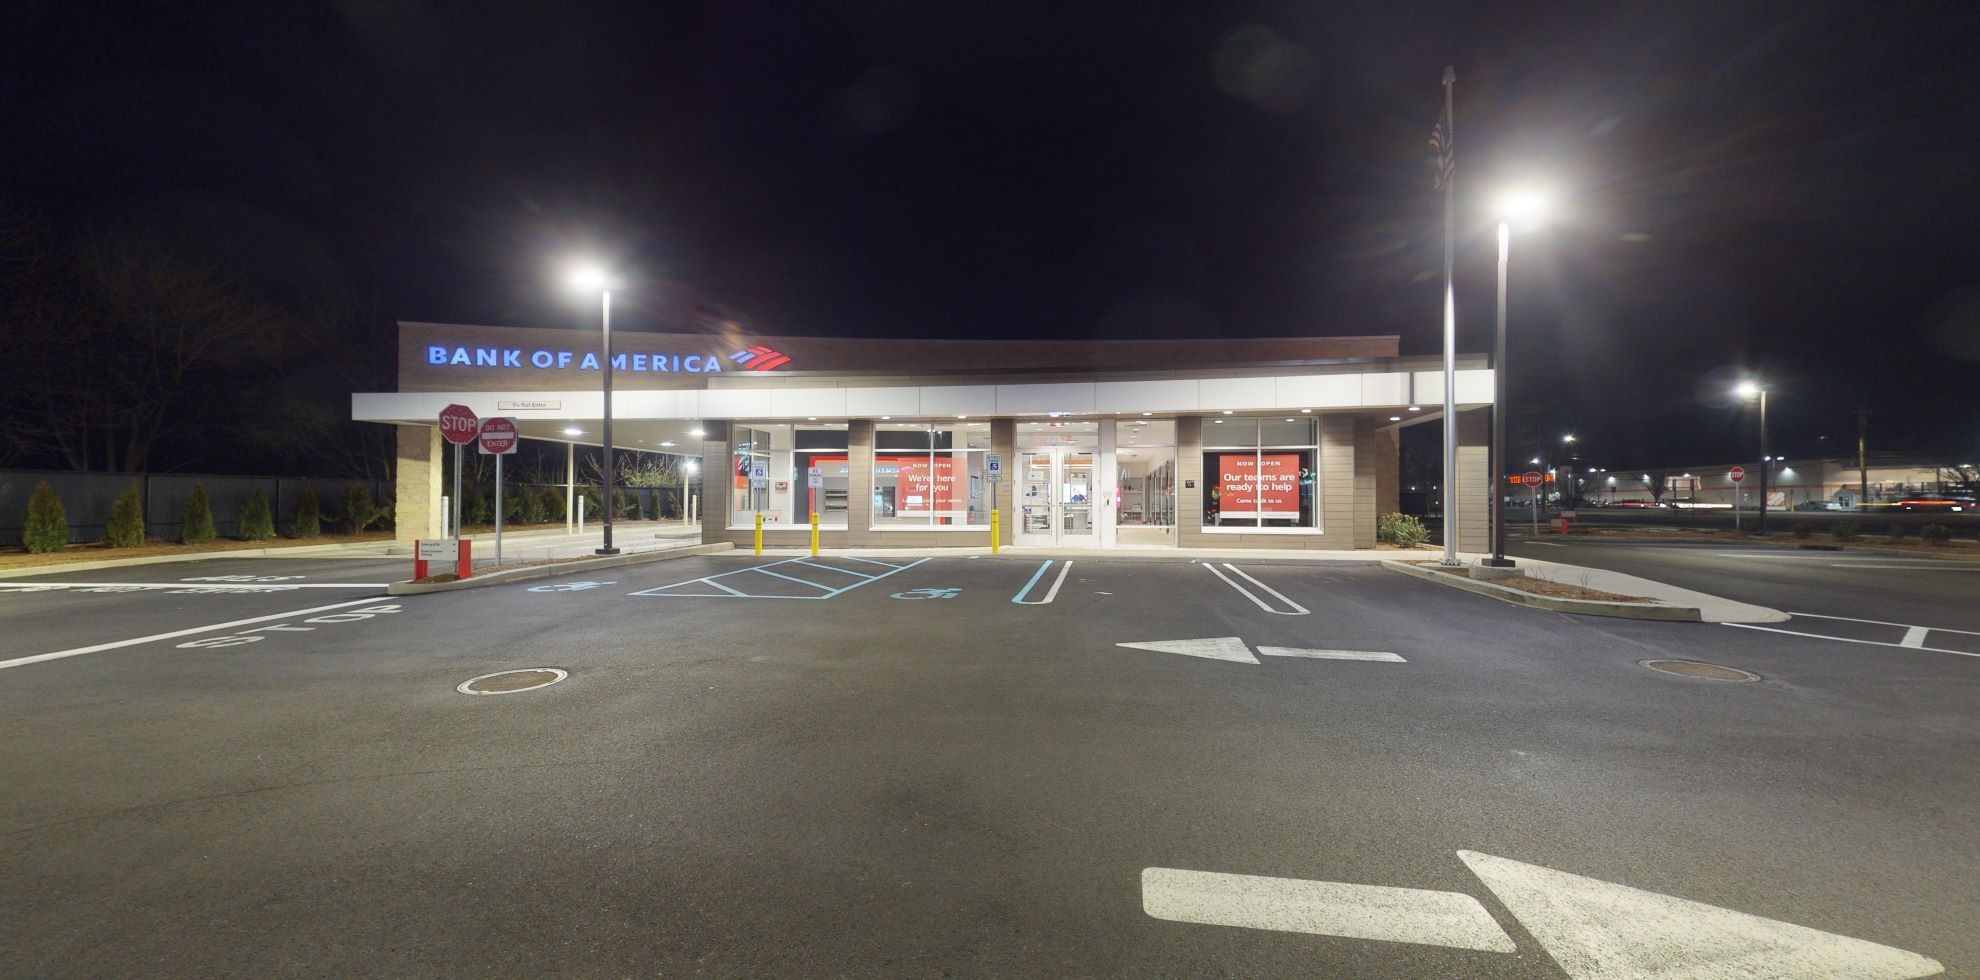 Bank of America financial center with drive-thru ATM | 3287 Hempstead Tpke, Levittown, NY 11756